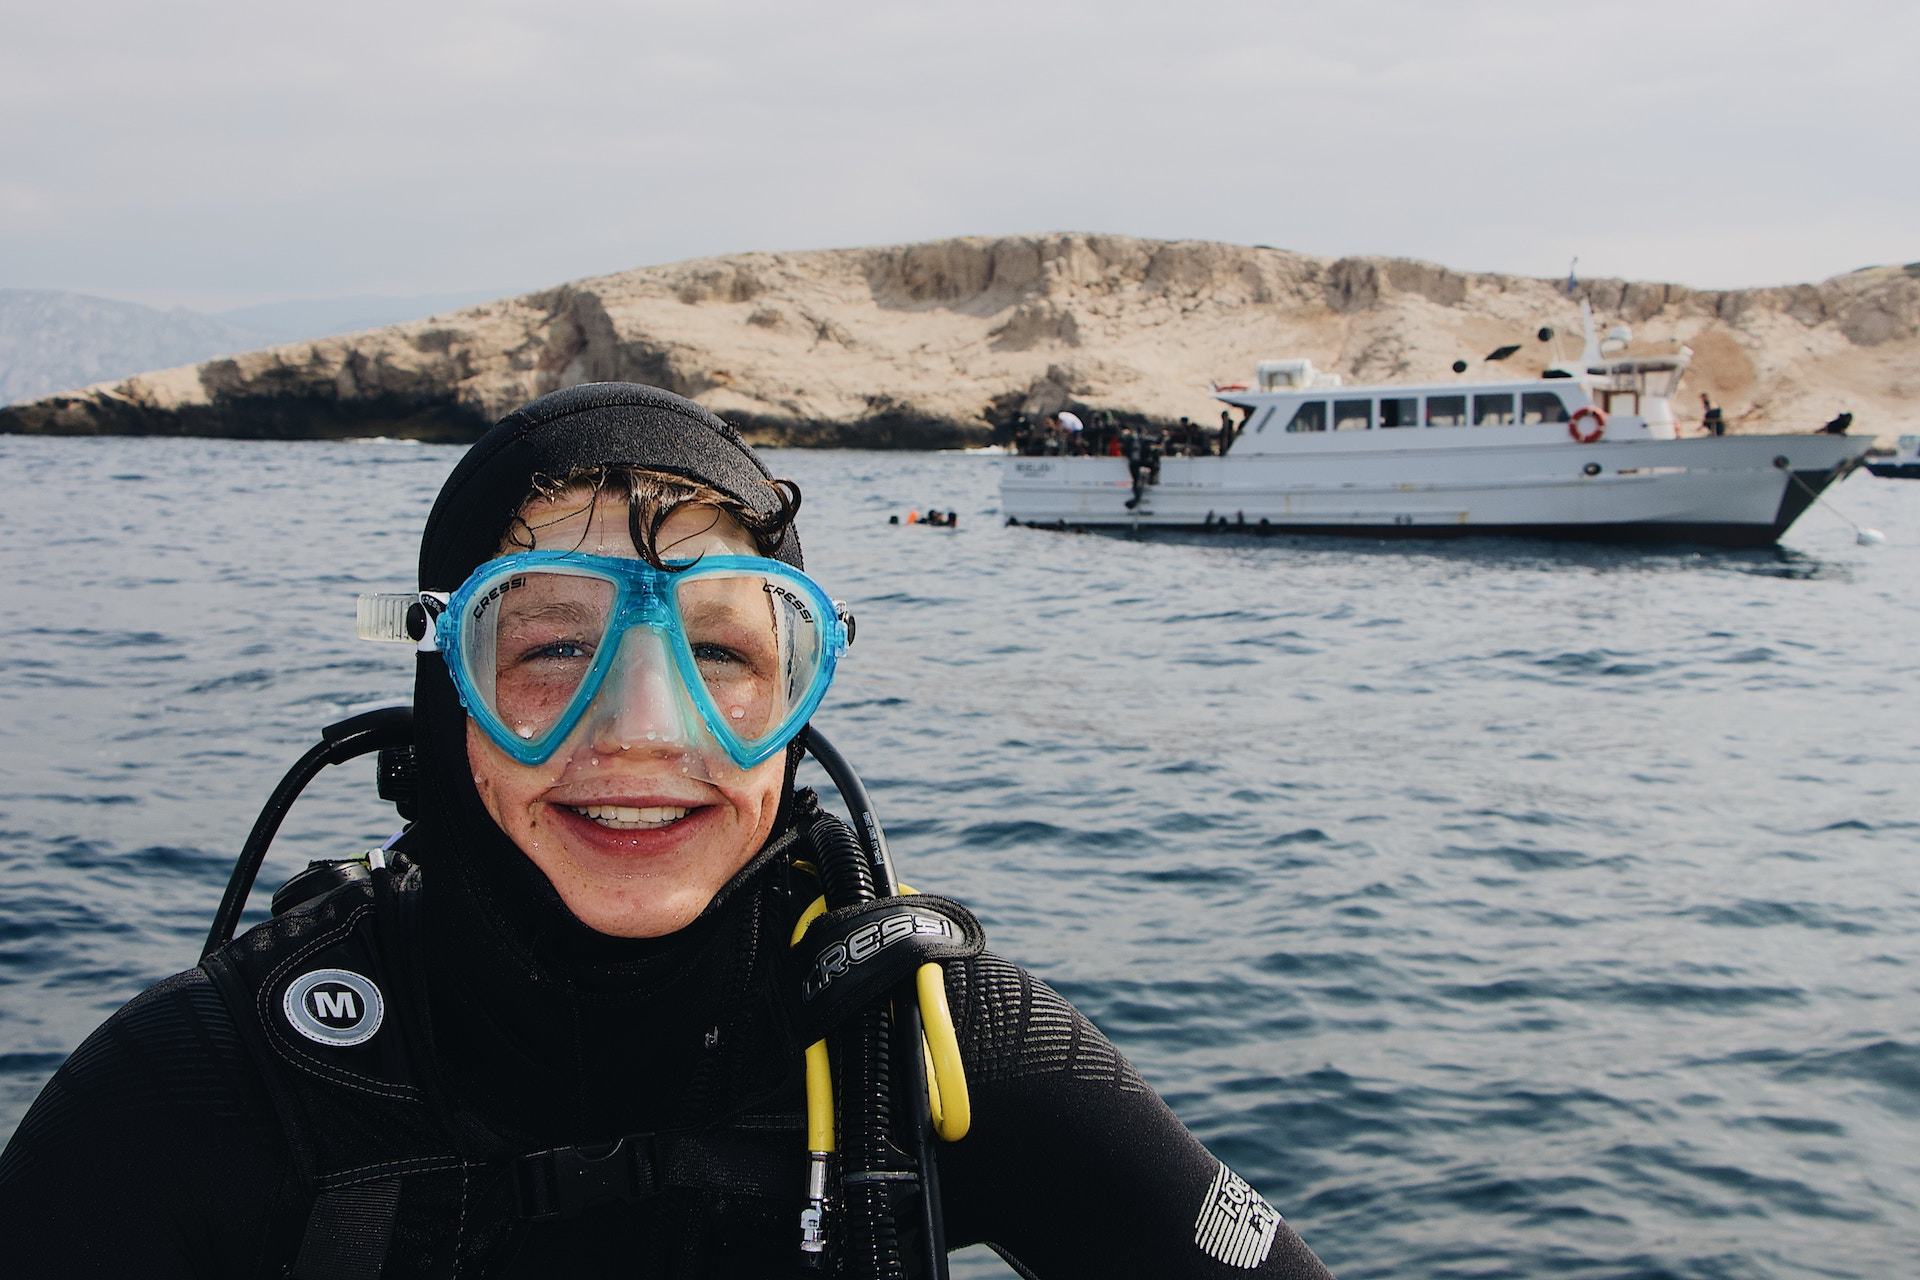 How old do you have to be to scuba dive - DOWN TO SCUBA